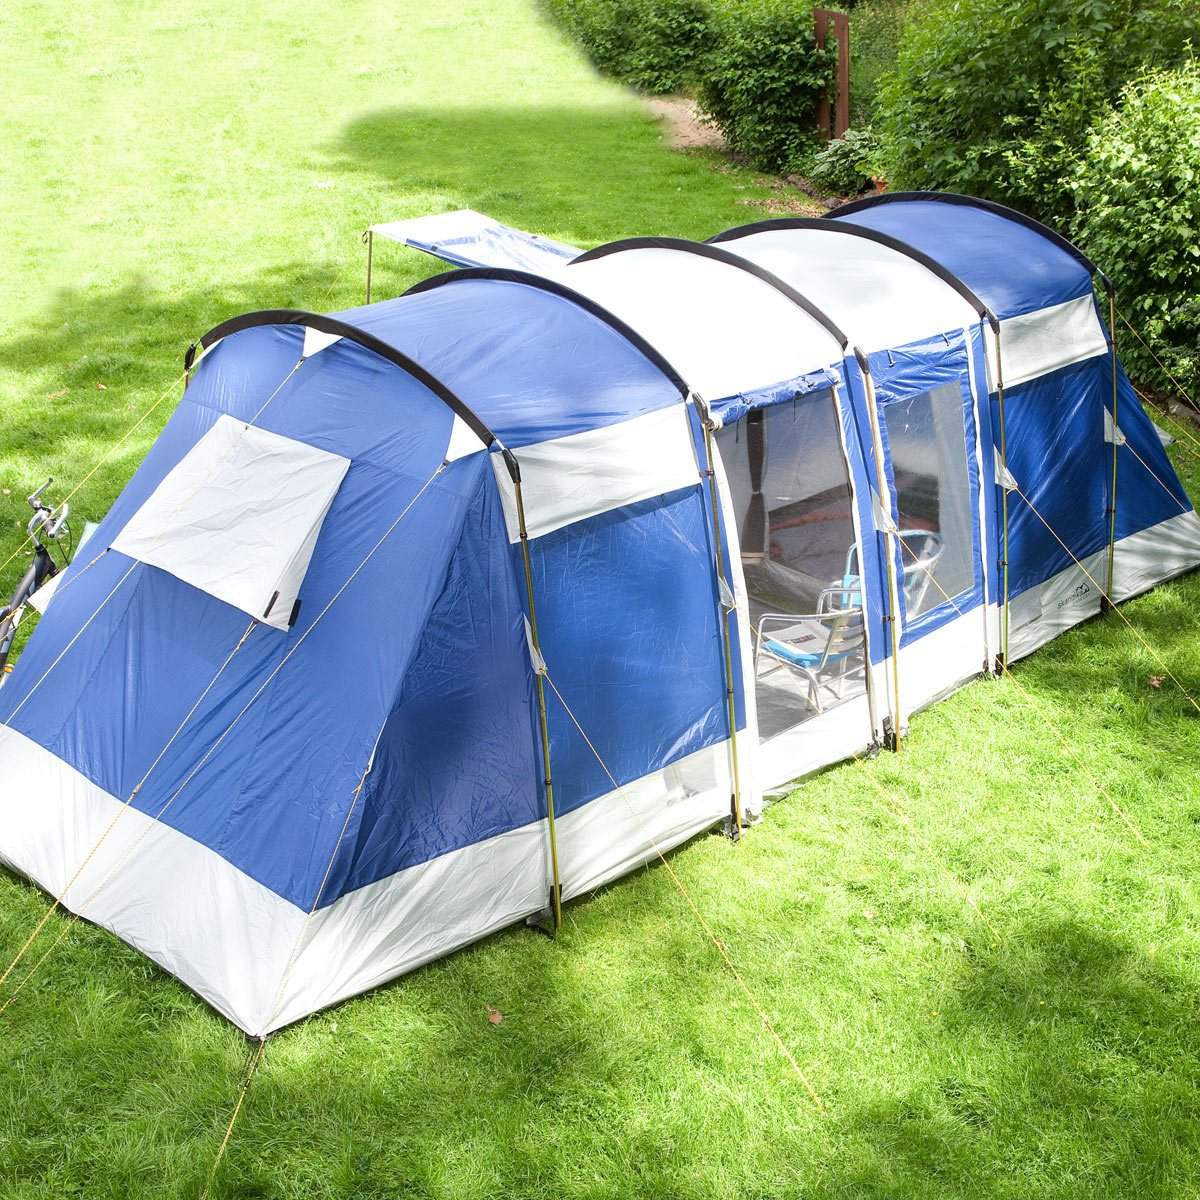 Skandika Montana Family Group Tunnel Tent with Sun Canopy 2 Sleeping Cabins 200 cm Peak Height 5000 mm Water Column Blue 6-Person Amazon.co.uk Sports ... & Skandika Montana Family Group Tunnel Tent with Sun Canopy 2 ...